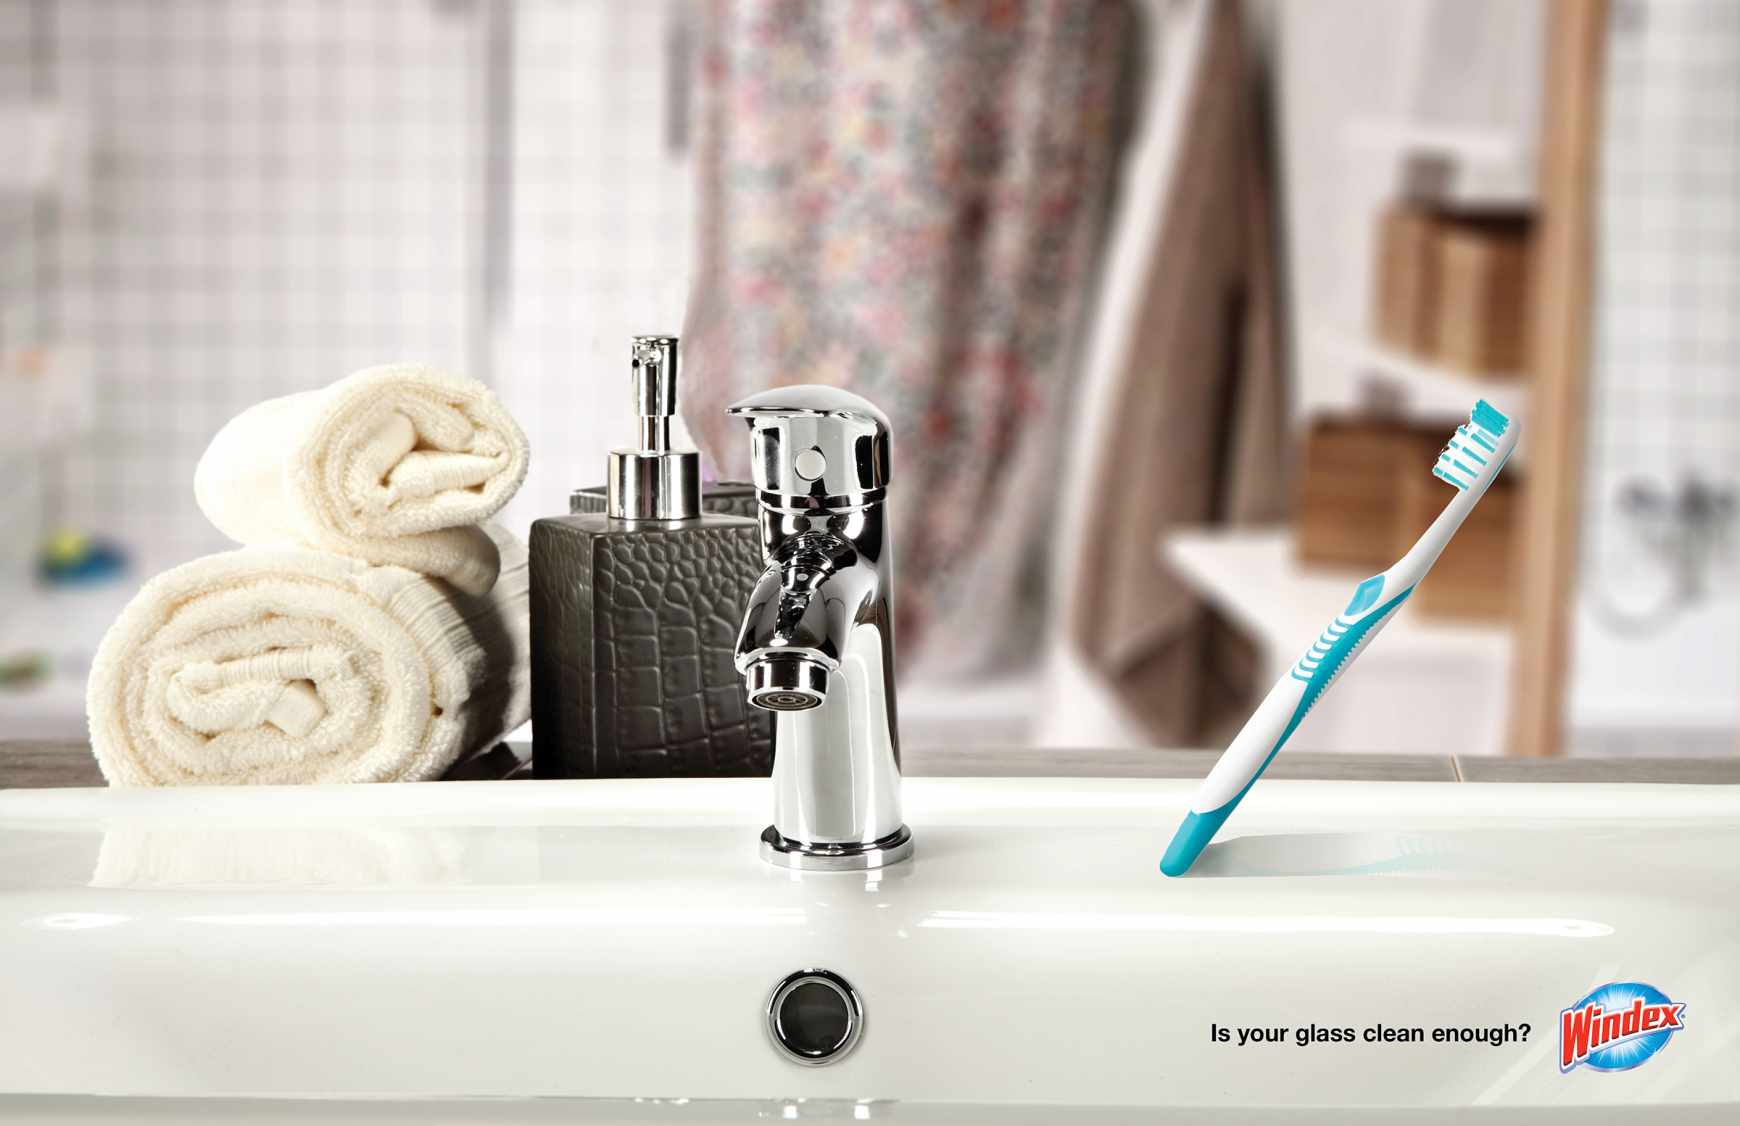 Windex Print Ad - Is your glass clean enough?, 3